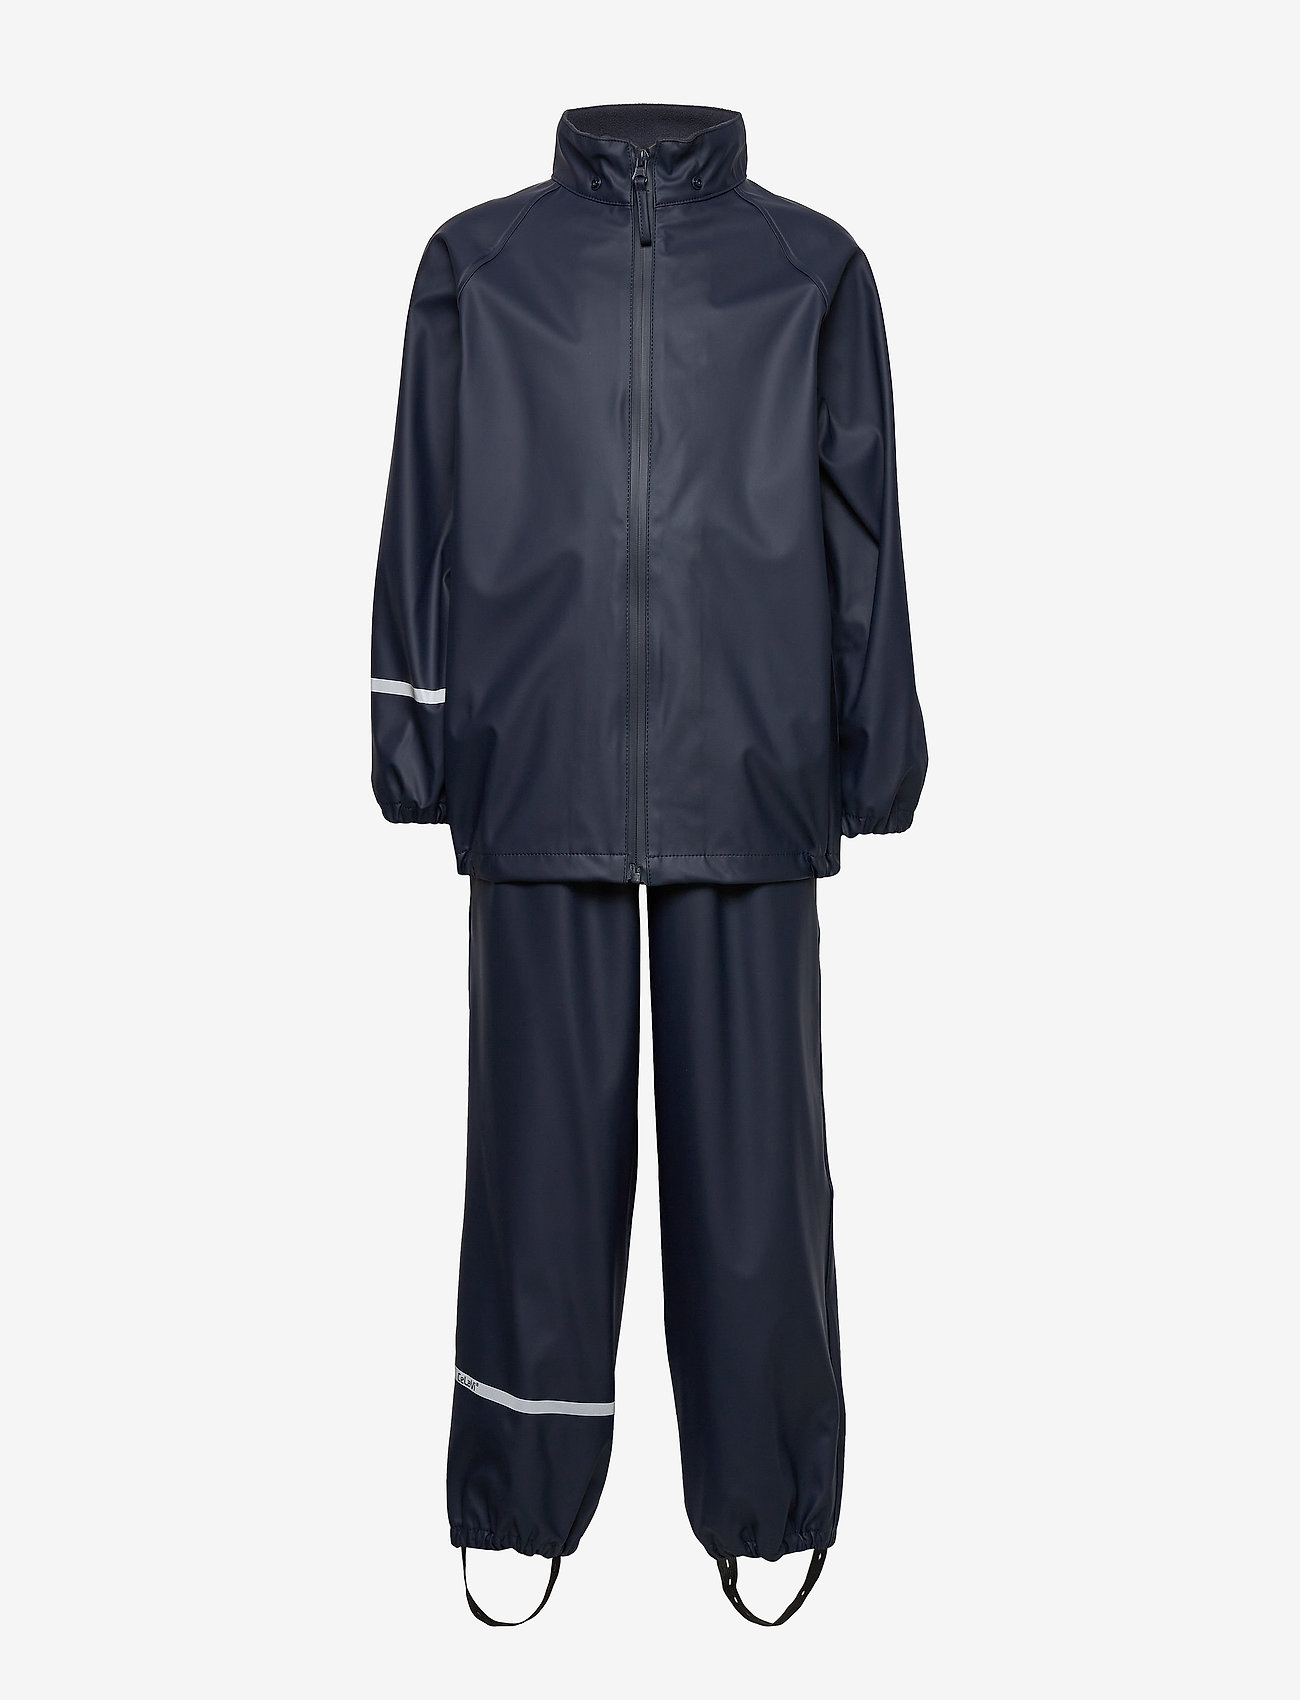 CeLaVi - Basic rainwear set -Recycle PU - ensembles - dark navy - 1